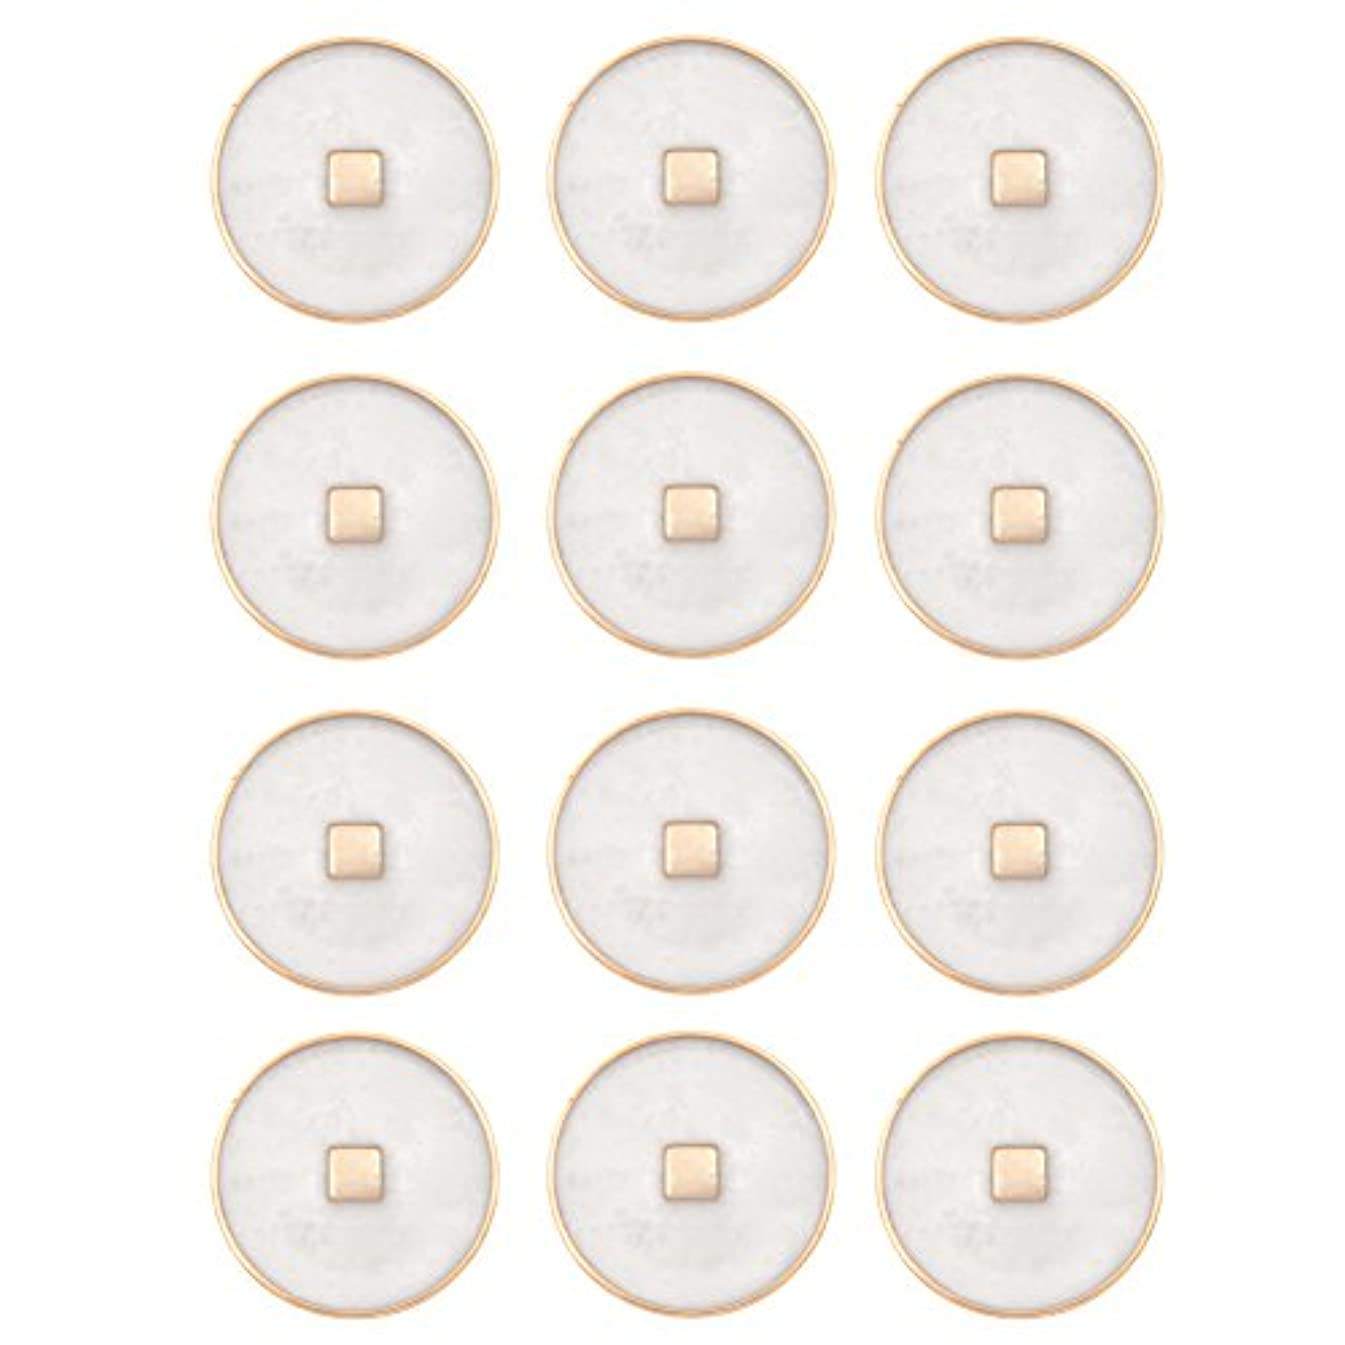 Square Stud Center Design With Epoxy Center ABS Metal Plated Round Shank Button 16Line Gold/Pearl Epoxy